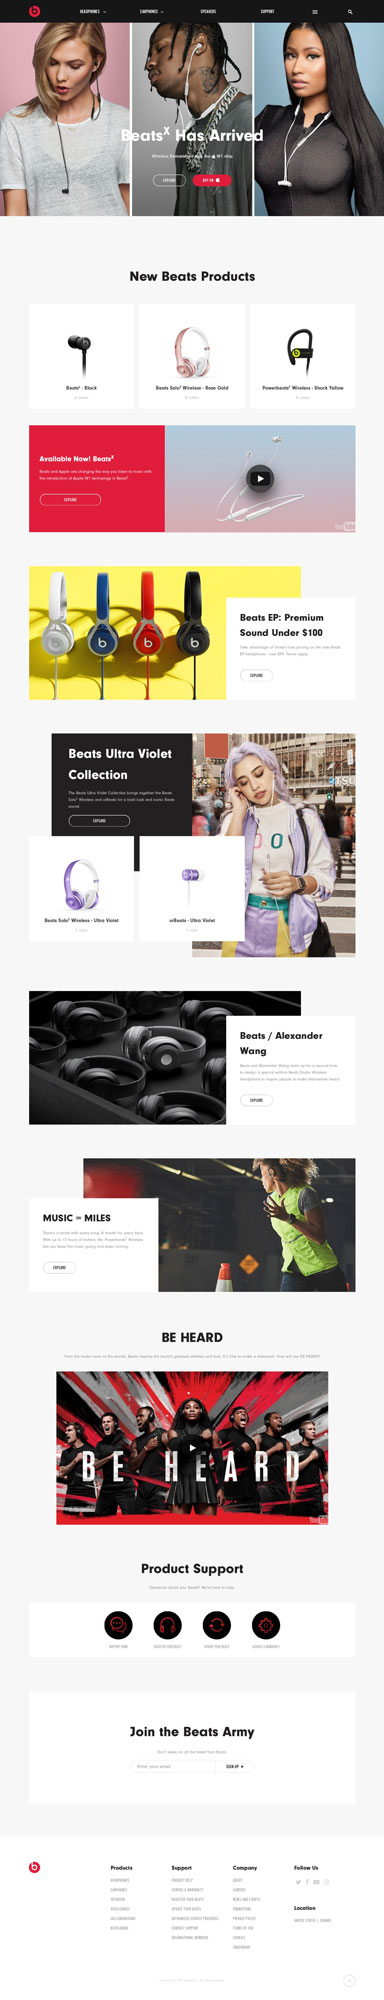 ecommerce landing page examples